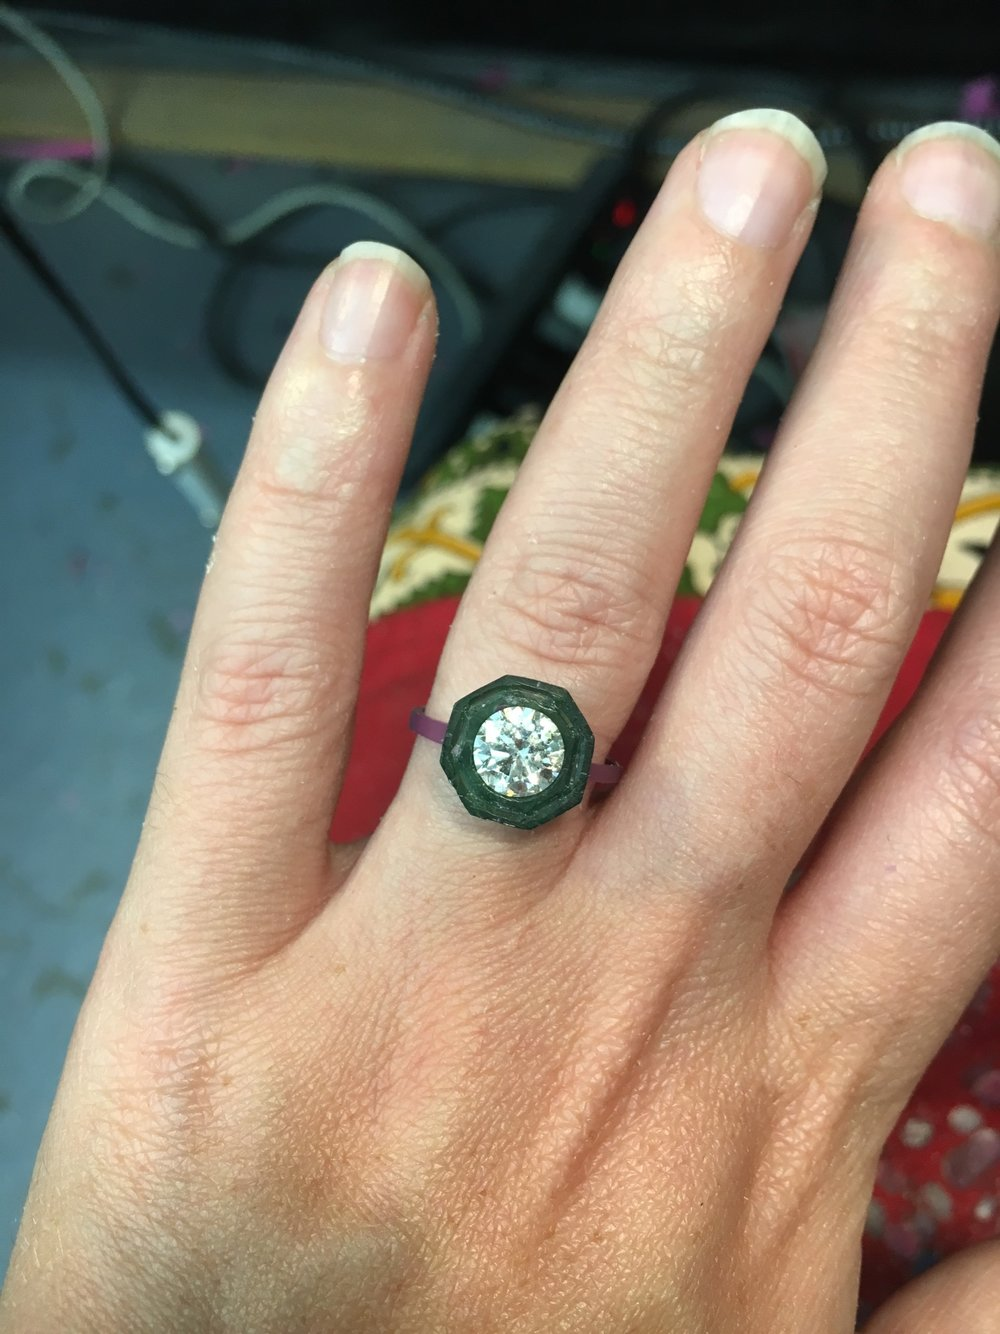 The band is attached to the setting using heat to mend the waxes together. The diamond is just resting on the setting, just in the photo for emphasis!